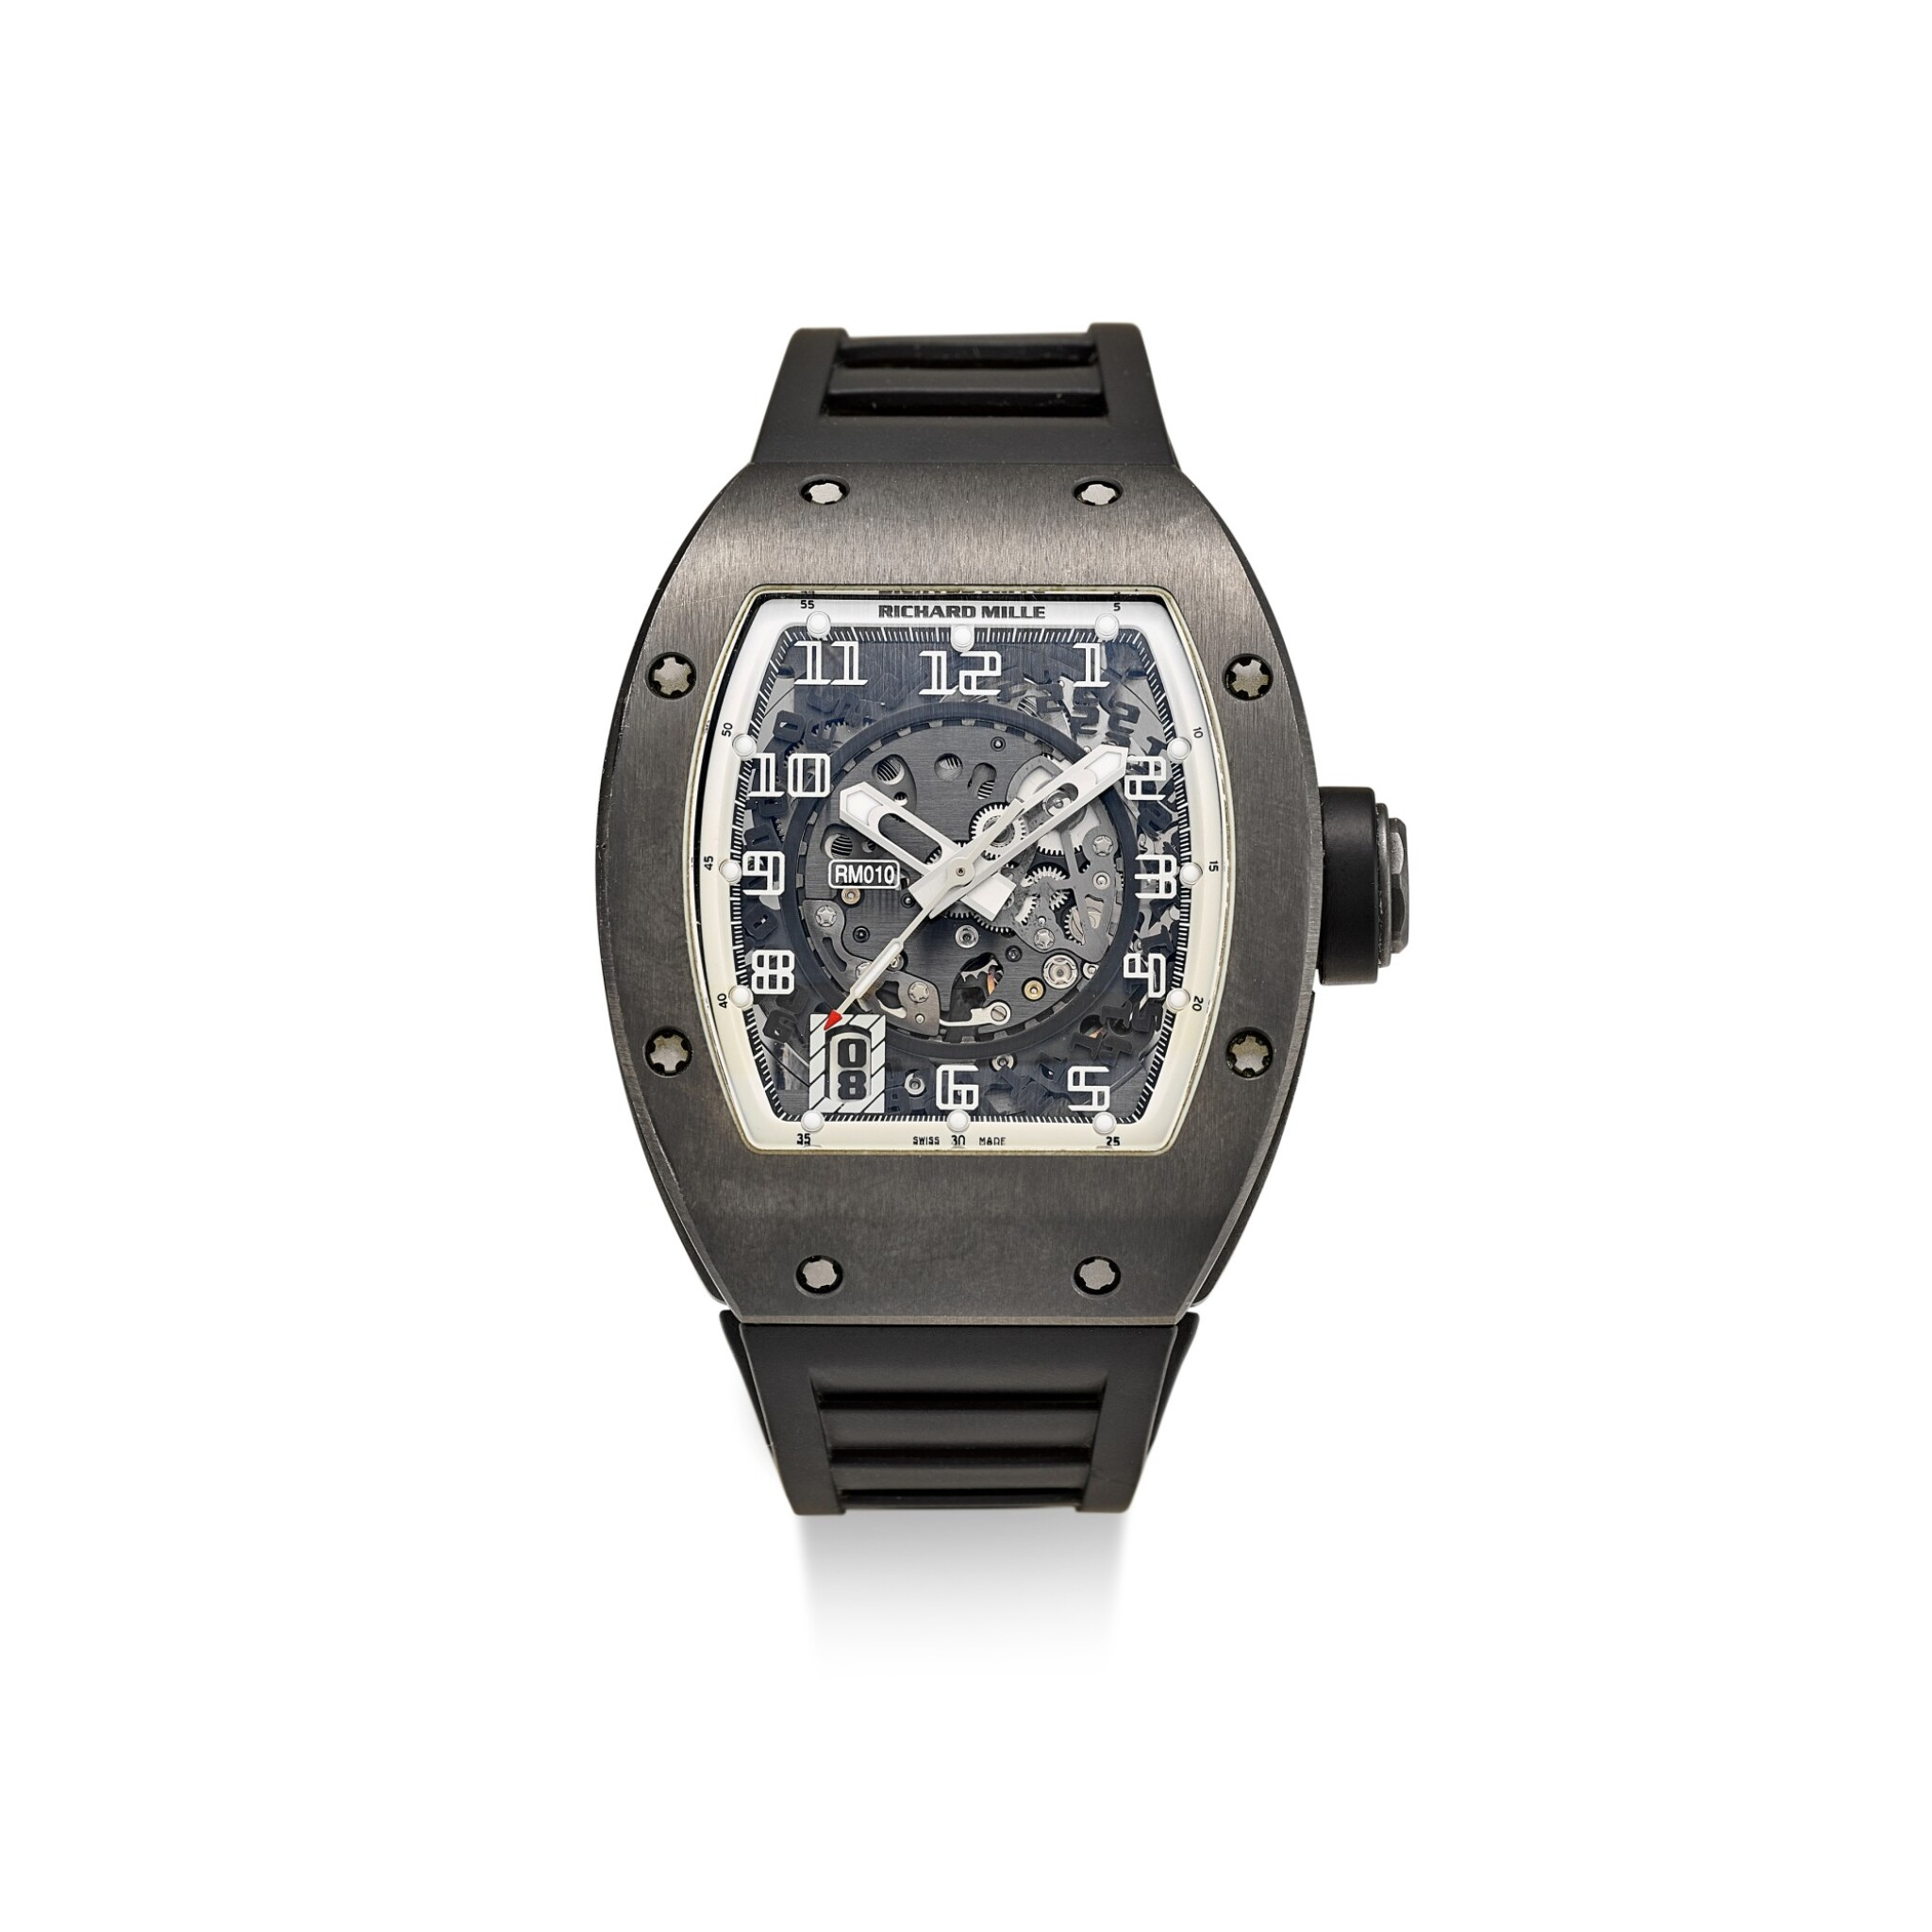 View full screen - View 1 of Lot 354. RICHARD MILLE | RM010 A LIMITED EDITION DLC-COATED TITANIUM SEMI-SKELETONISED WRISTWATCH WITH DATE, MADE FOR THE PARIS BOUTIQUE, CIRCA 2010.